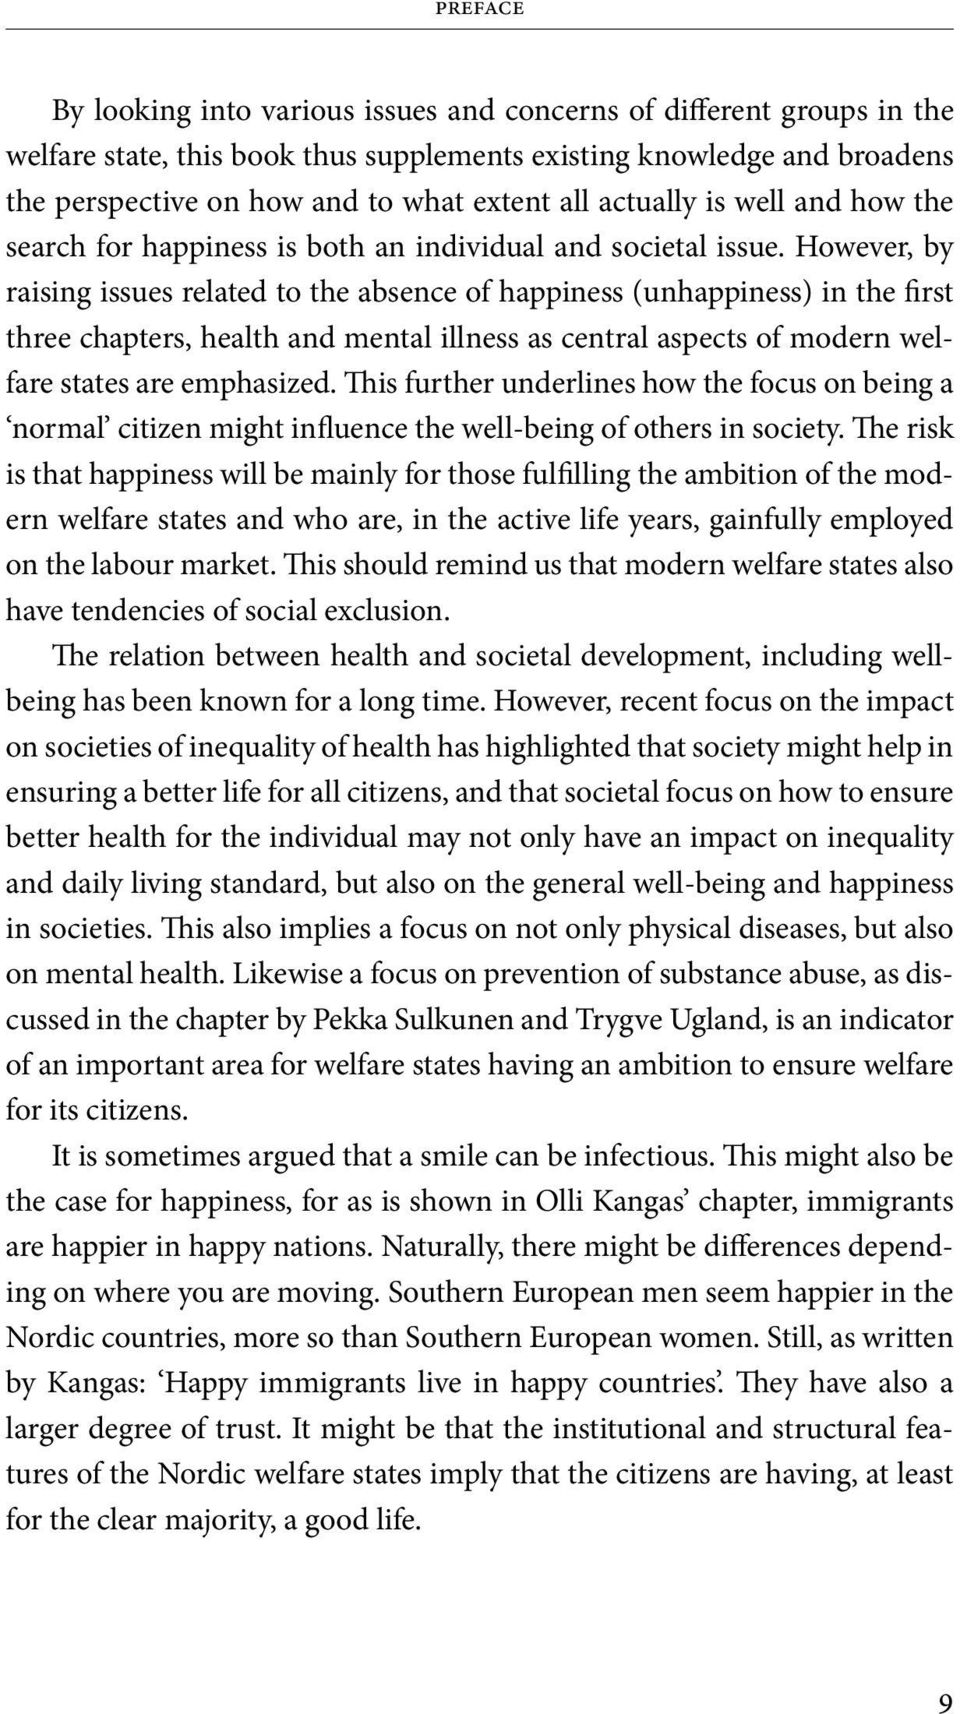 However, by raising issues related to the absence of happiness (unhappiness) in the first three chapters, health and mental illness as central aspects of modern welfare states are emphasized.